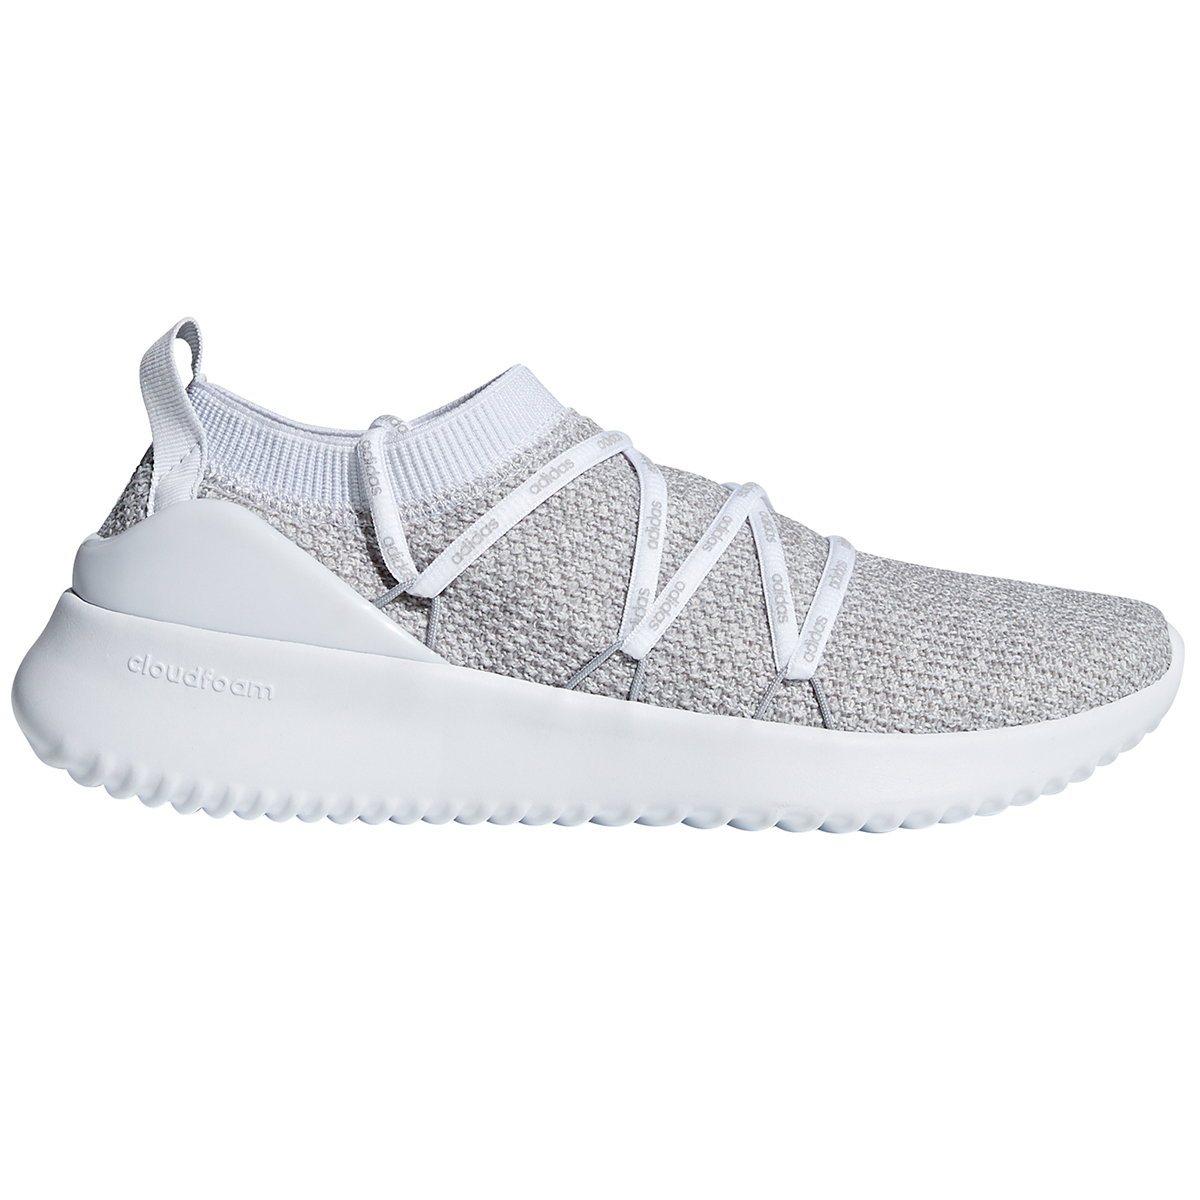 Adidas Women's Ultimamotion Running Shoes - White, 10